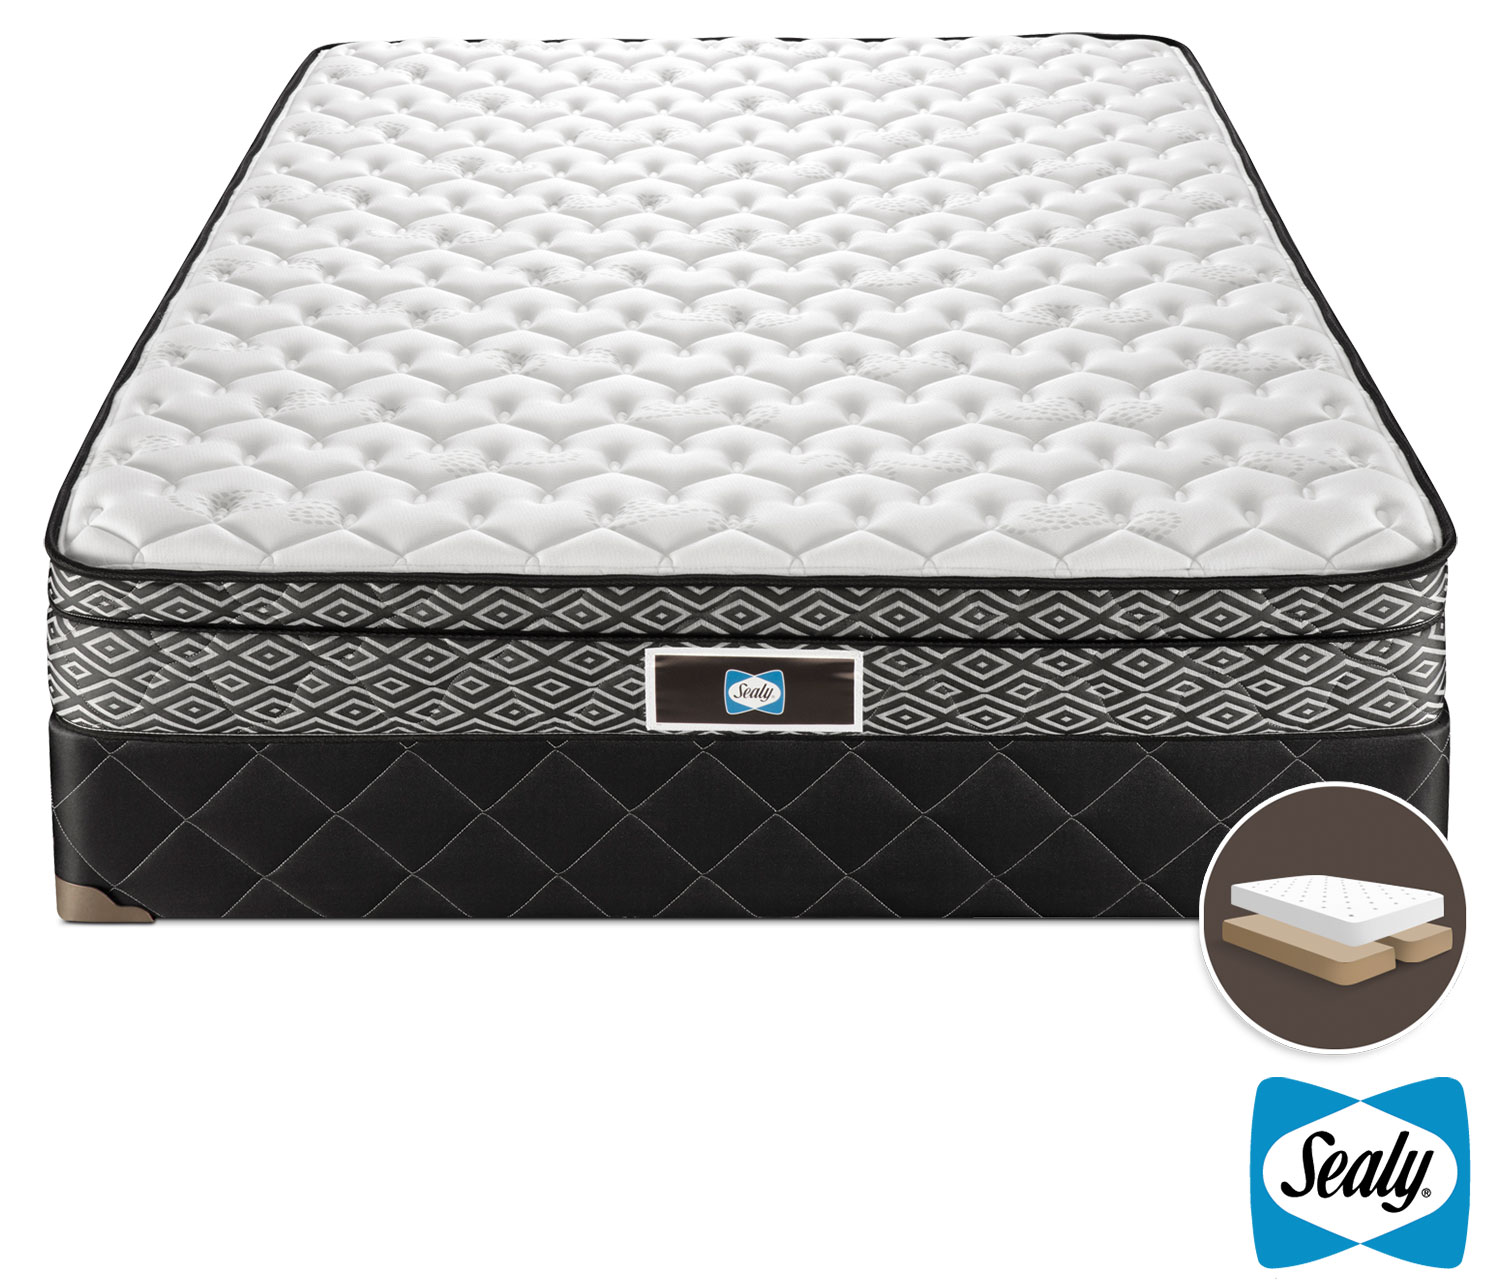 Mattresses and Bedding - Sealy Tale Firm Queen Mattress/Split Boxspring Set